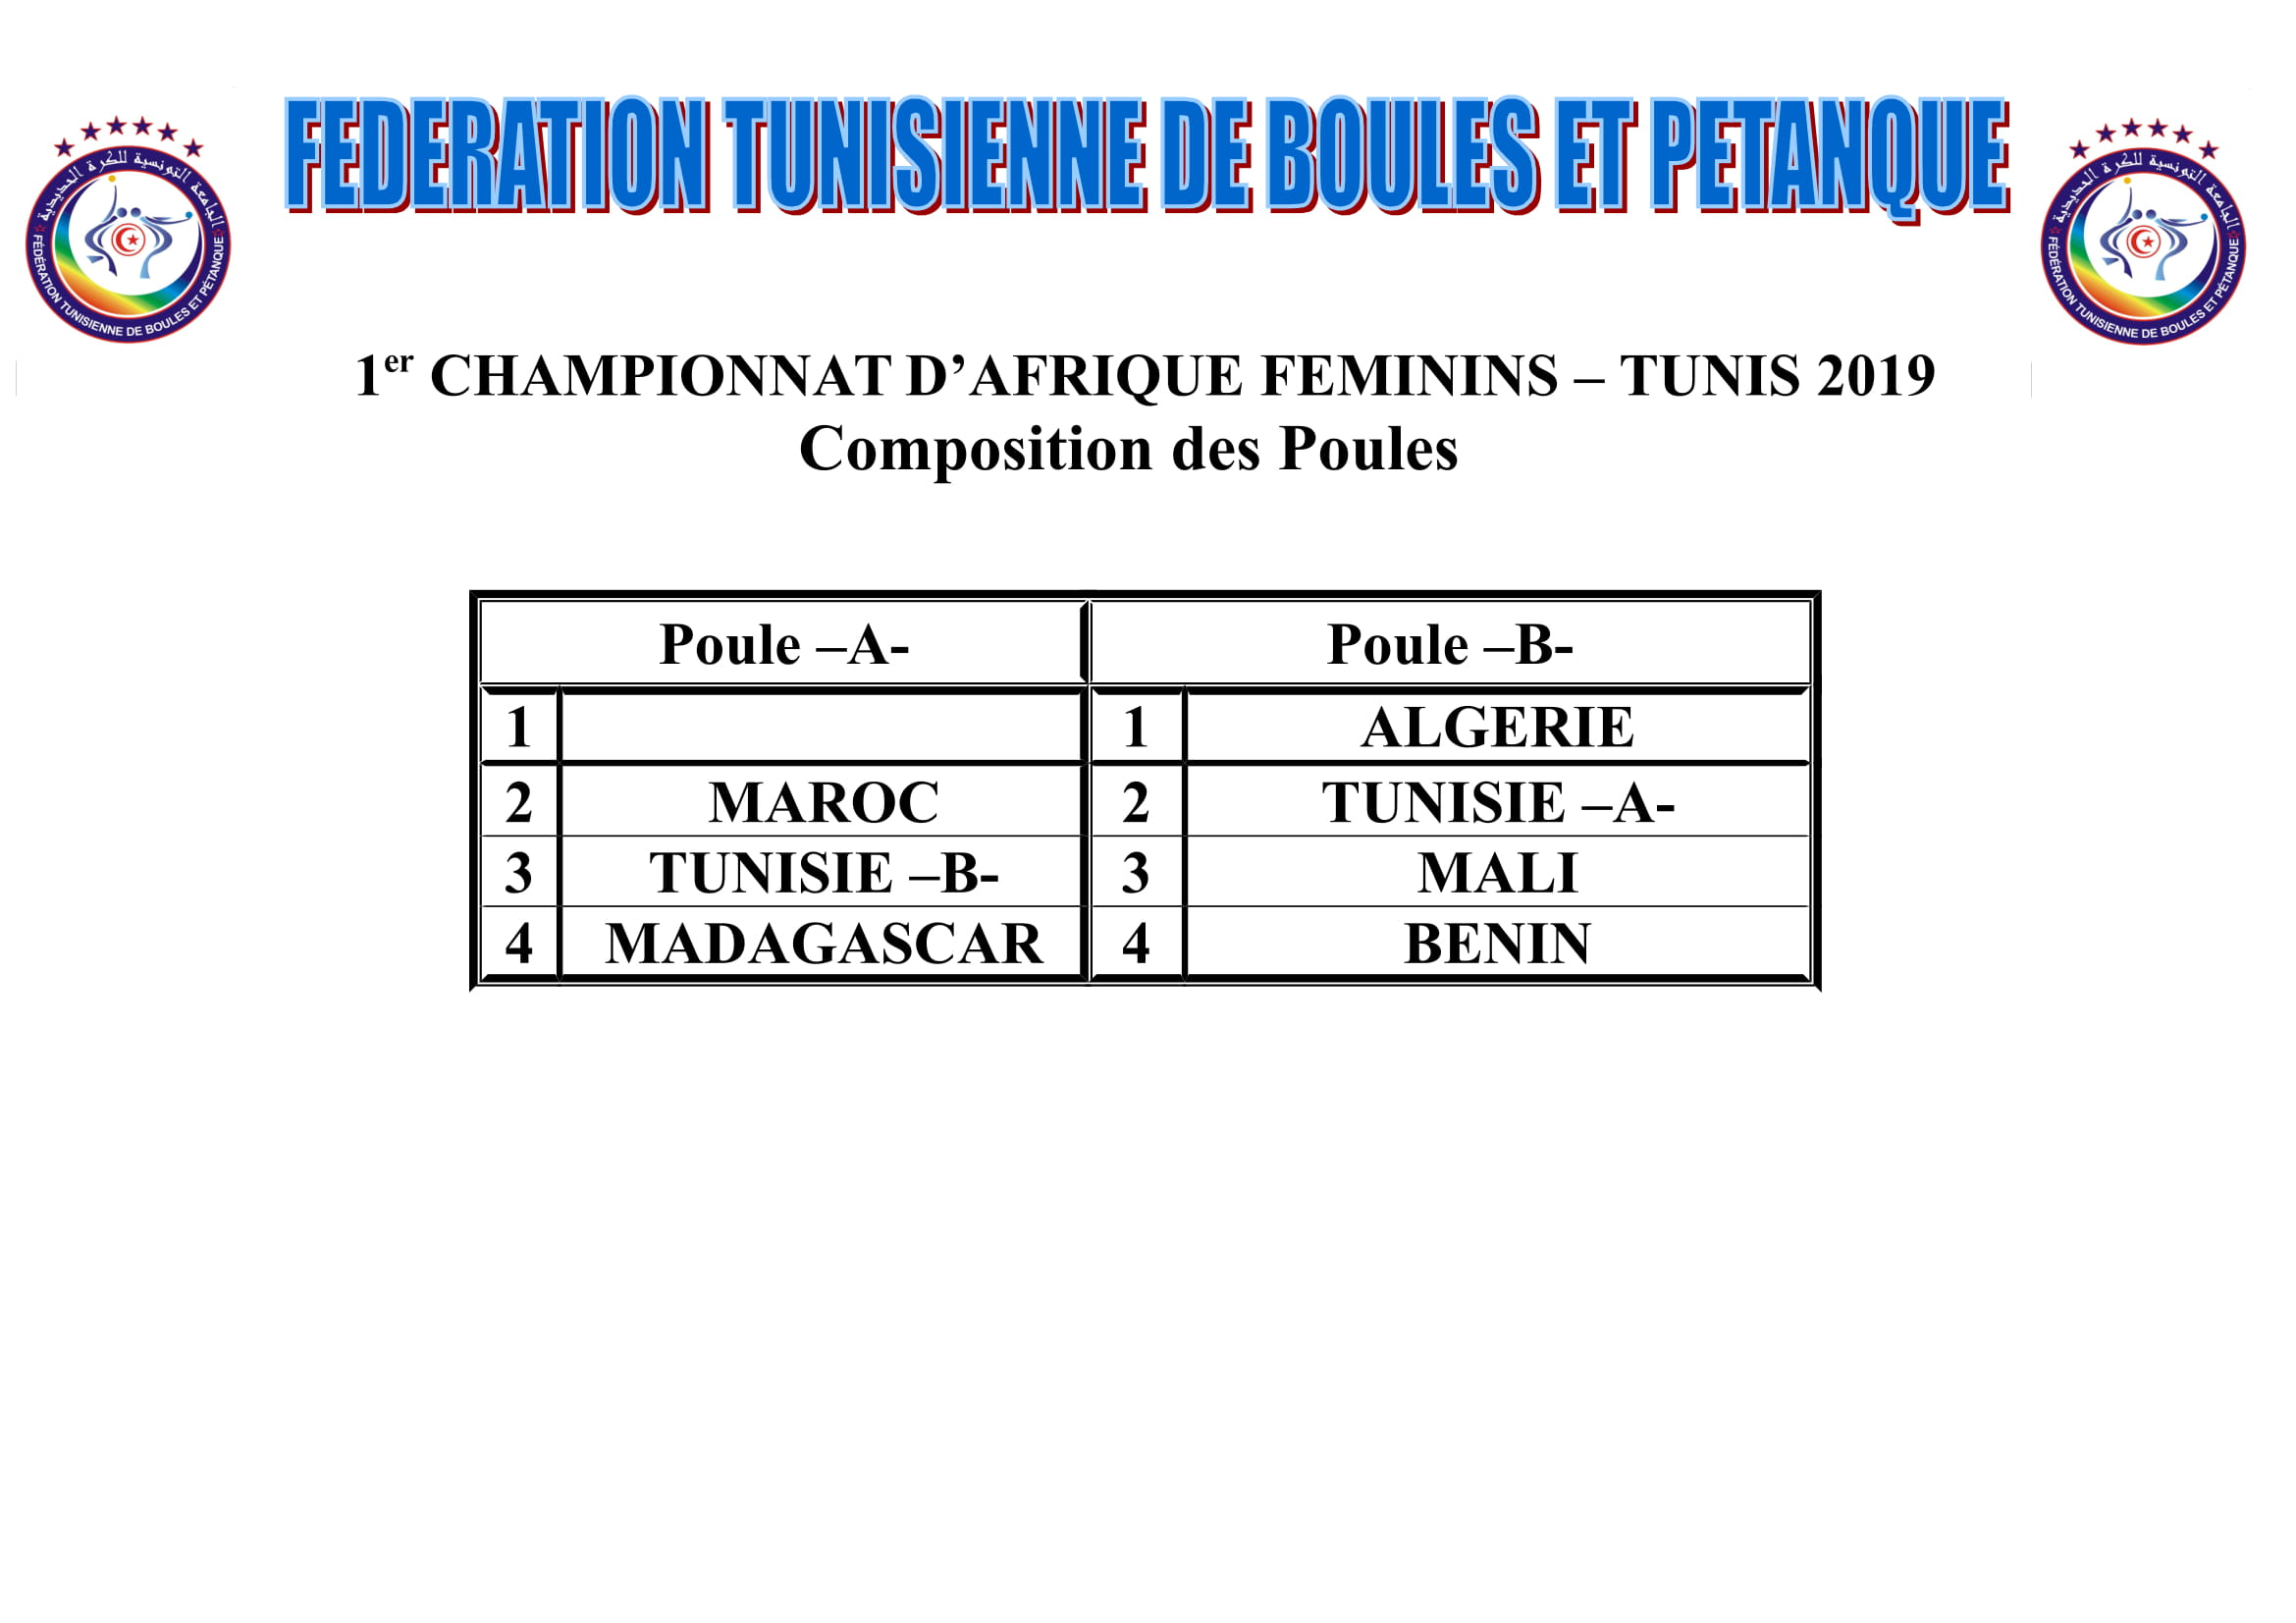 Composition des POULes CHAMP AFR-2